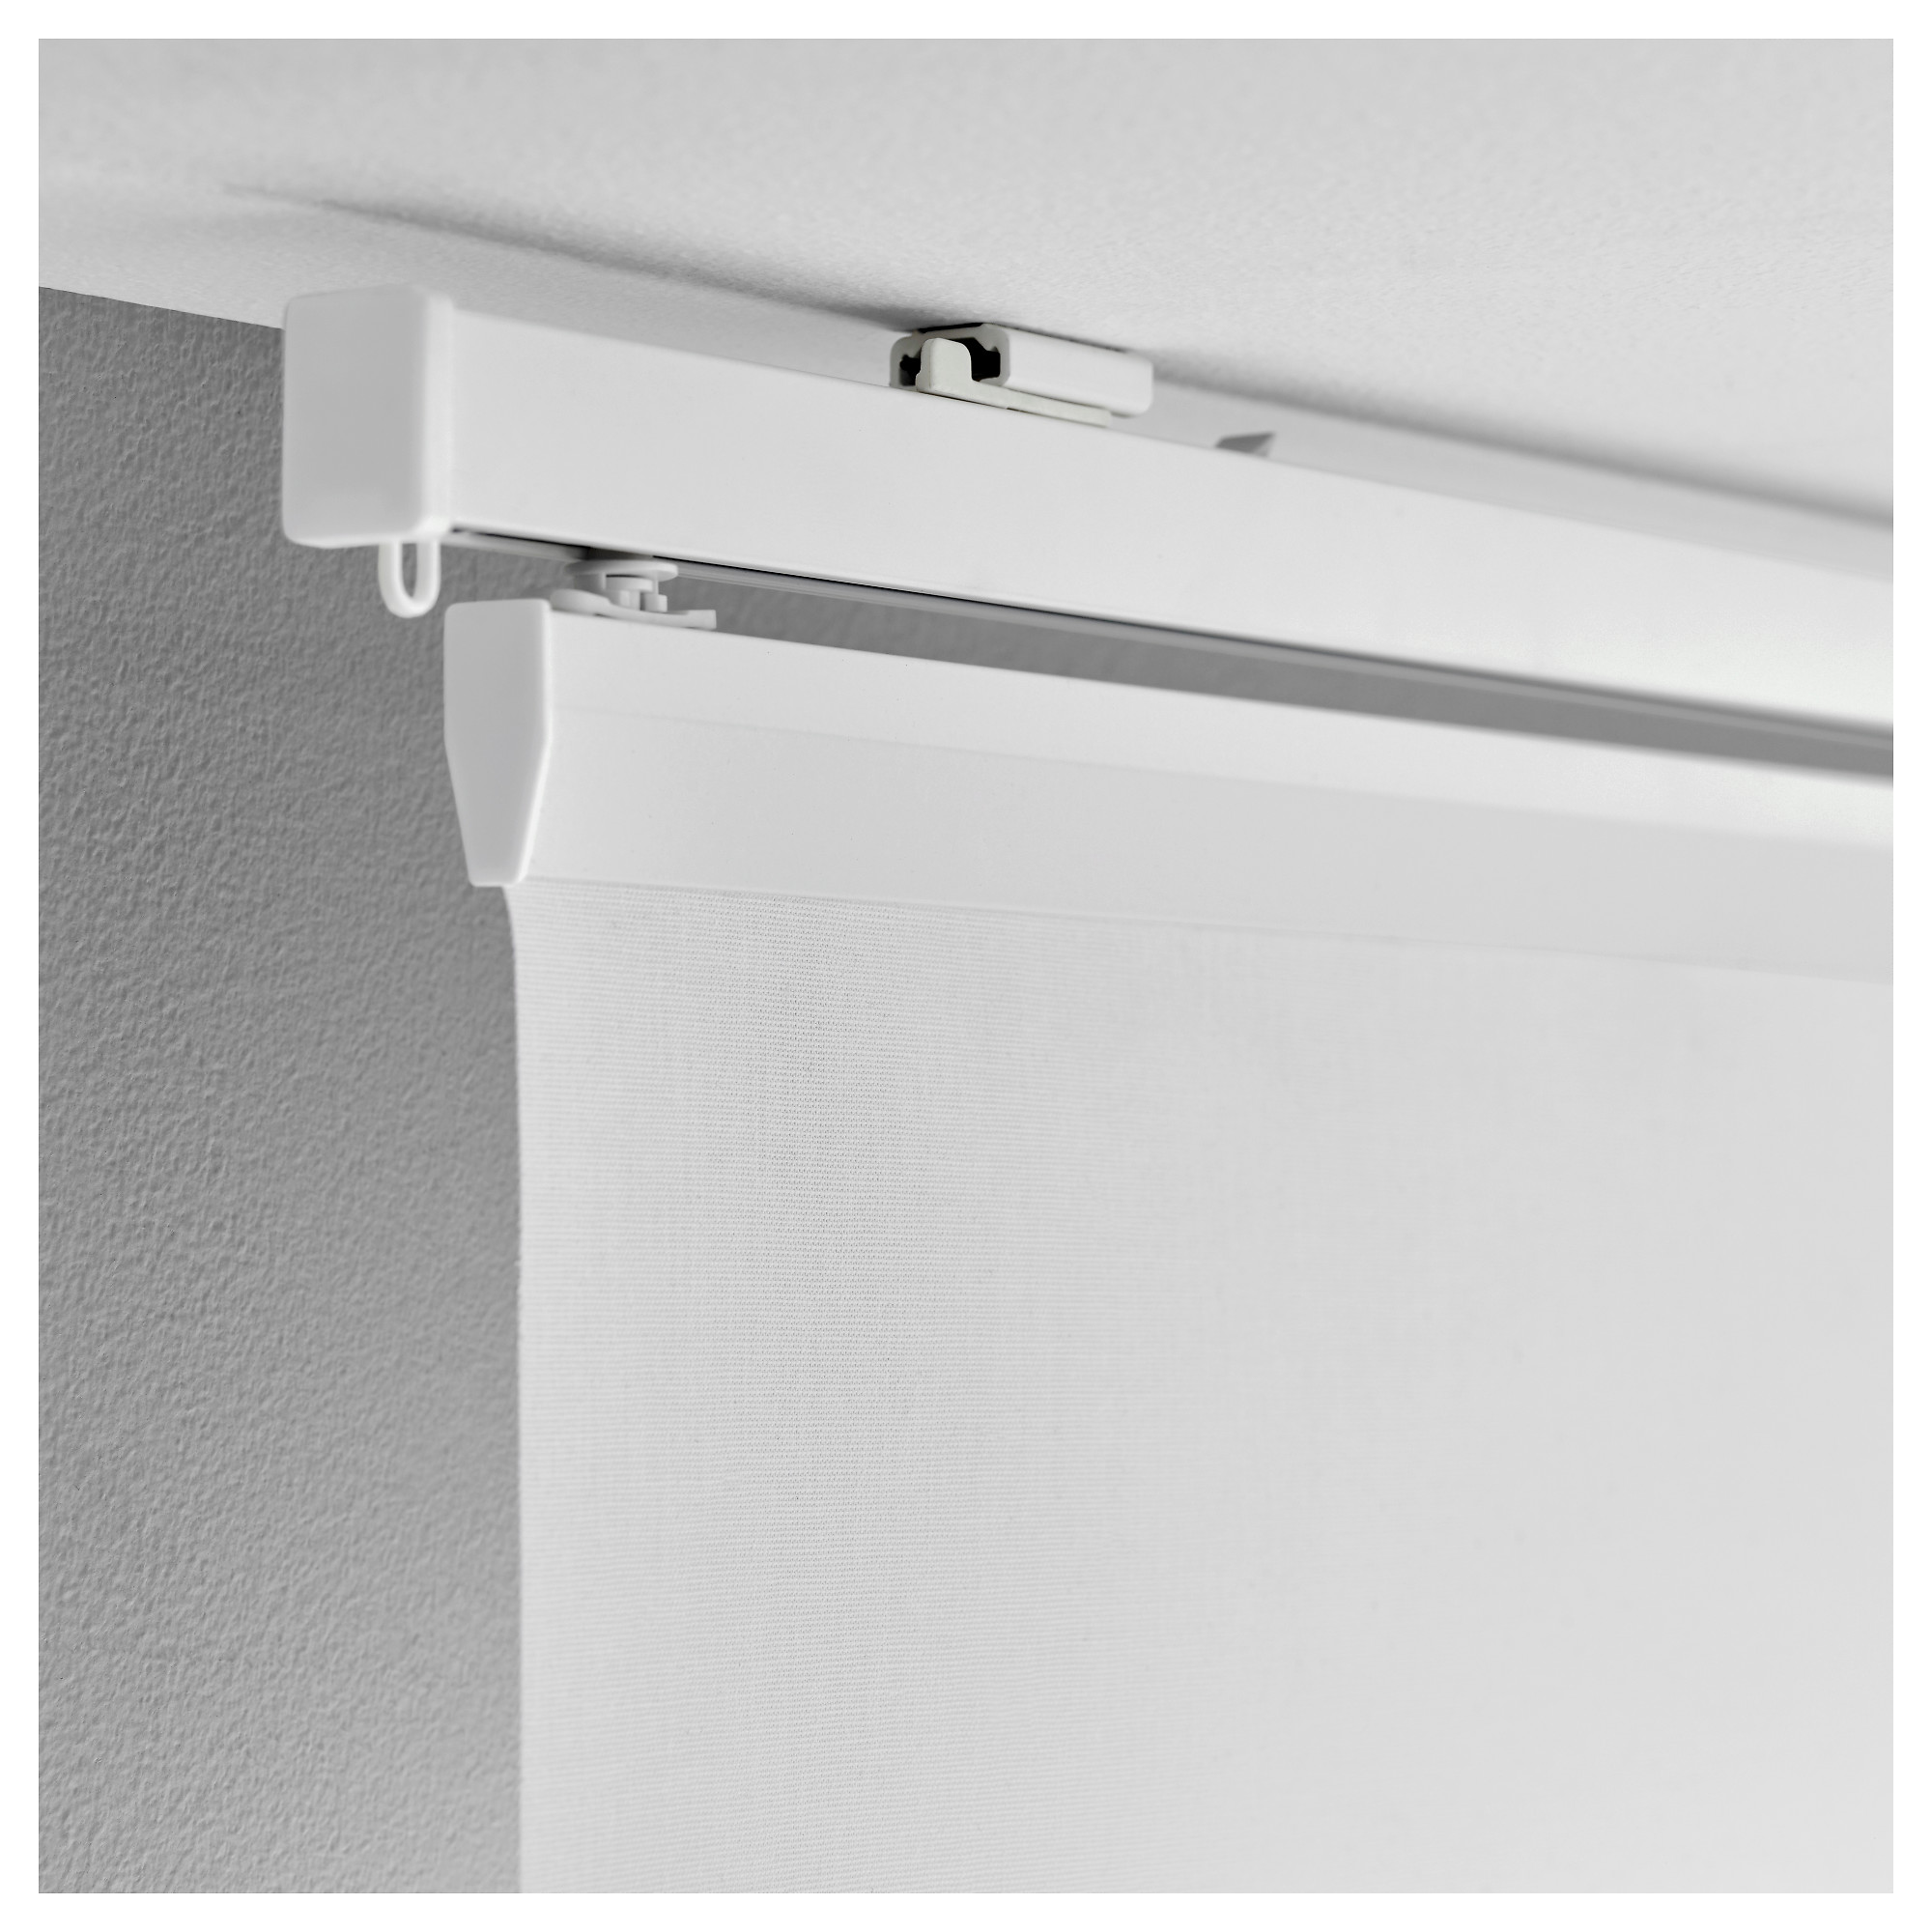 Ceiling mounted curtain track system - Vidga Ceiling Bracket White Height 1 4